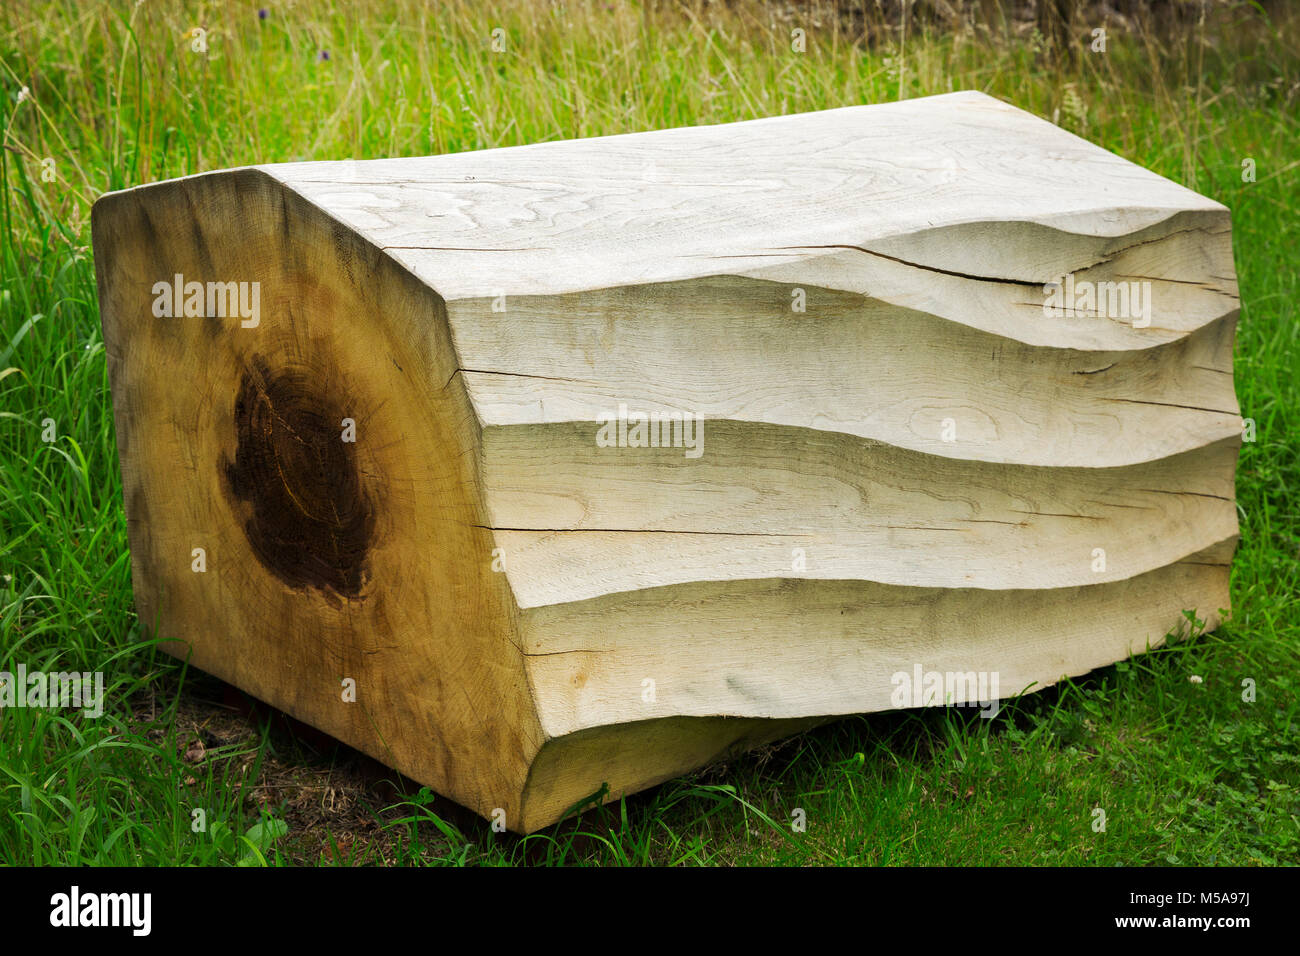 Close up of carved piece of tree trunk with wave pattern lying on grass. - Stock Image